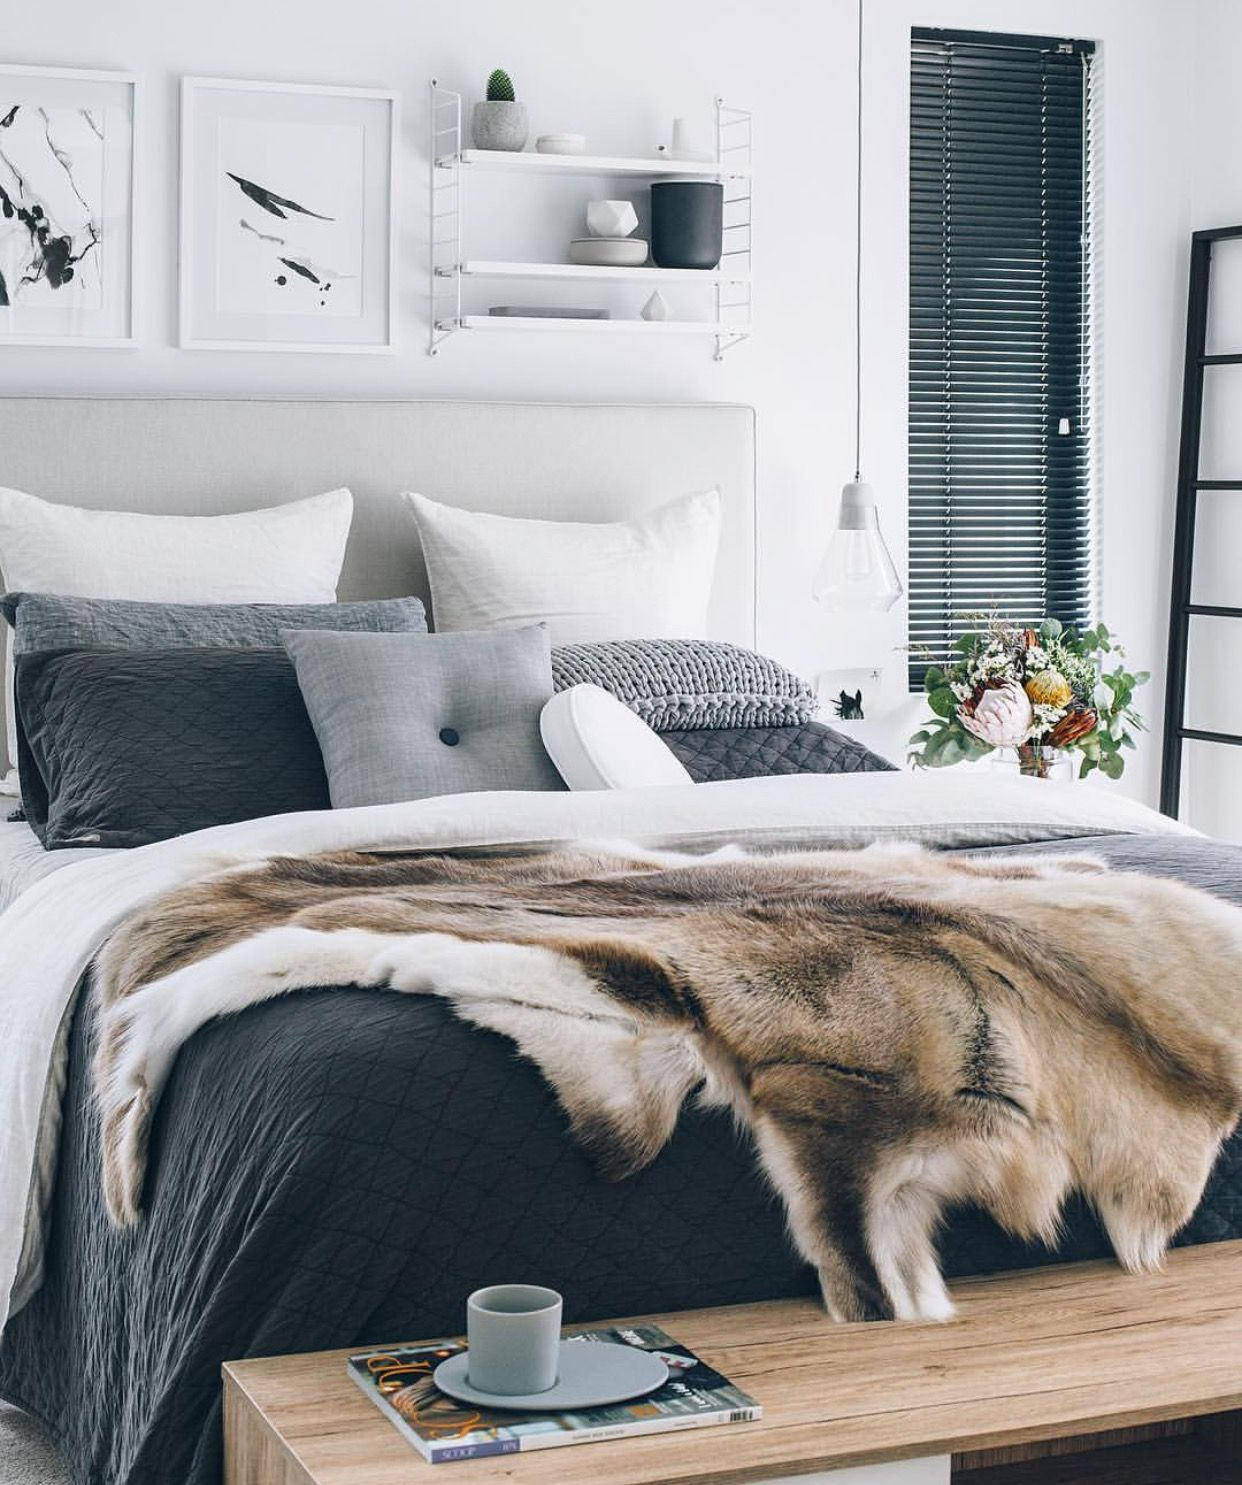 Stunning Charcoal Grey And White Toned Master Bedroom Photo By Oh Eight Oh Nine Bedroom Decor Scandinavian Bedroom Design